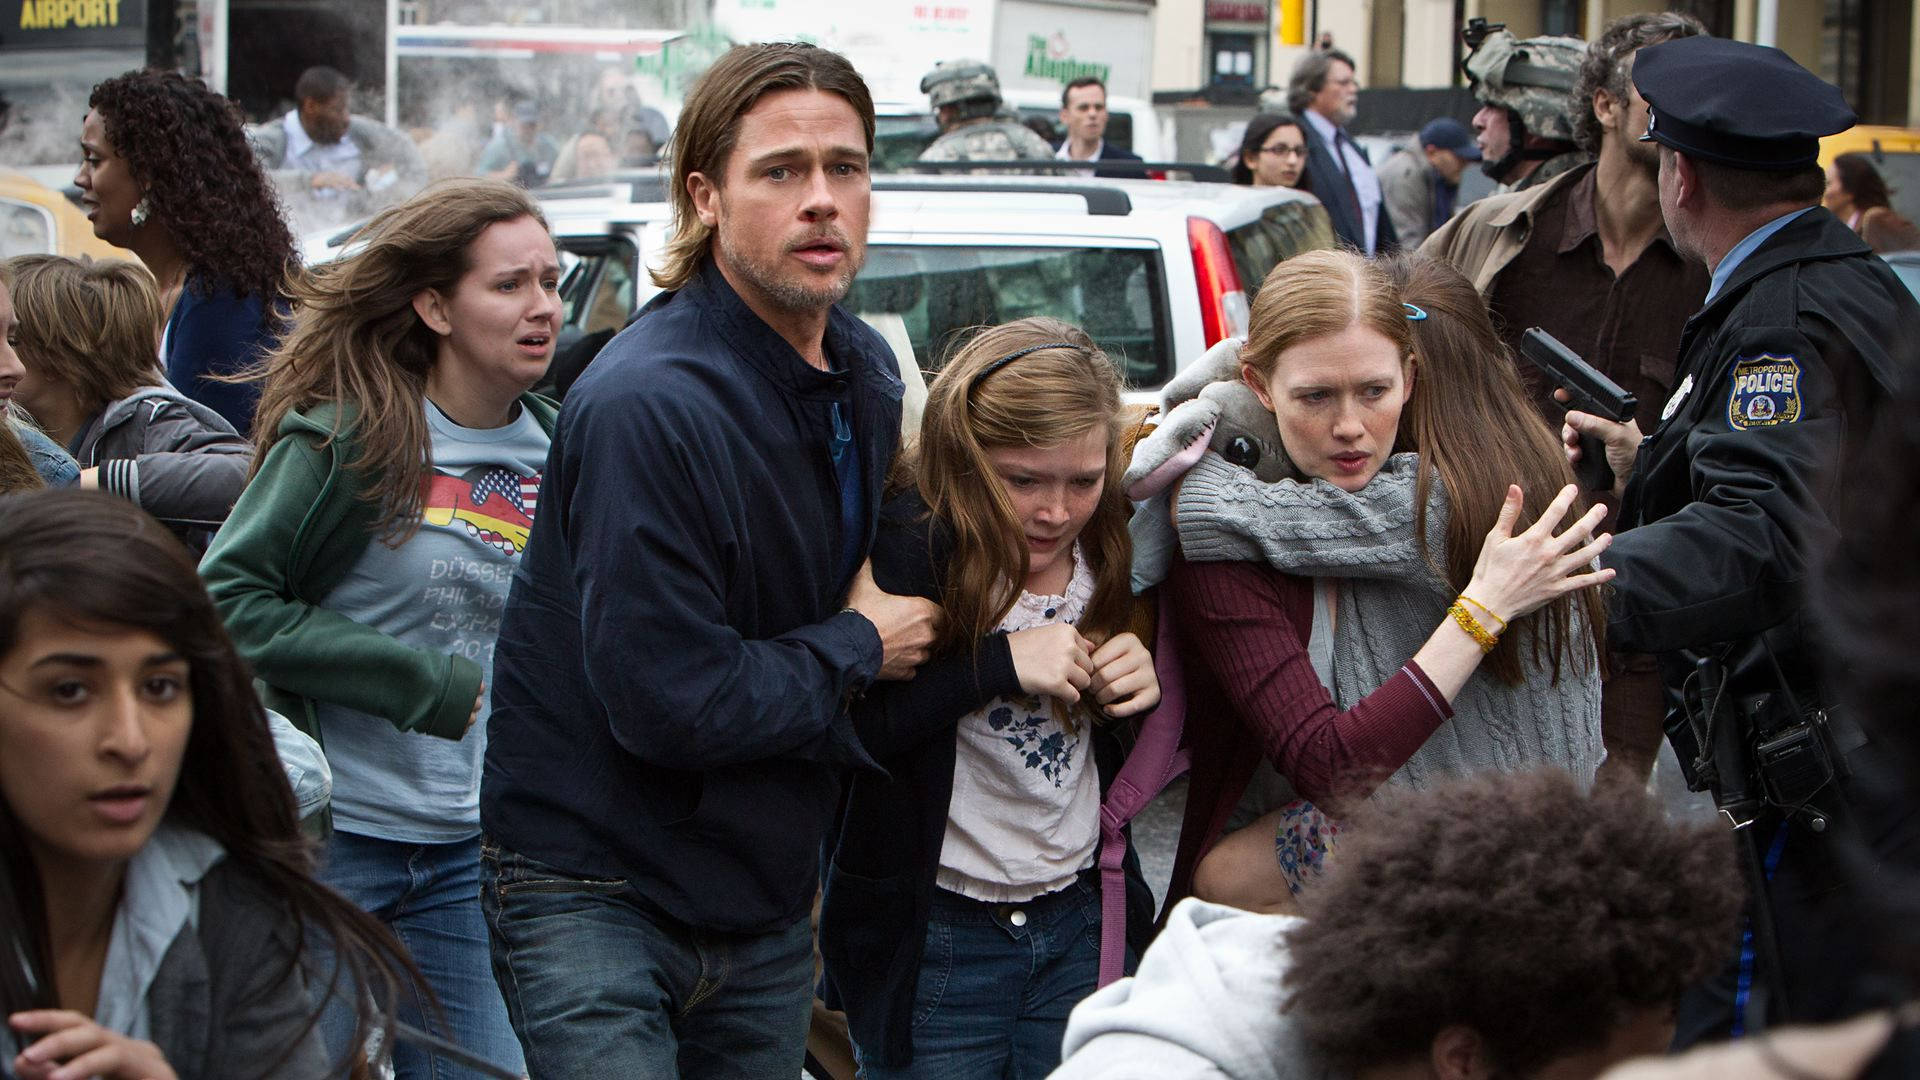 An image from World War Z